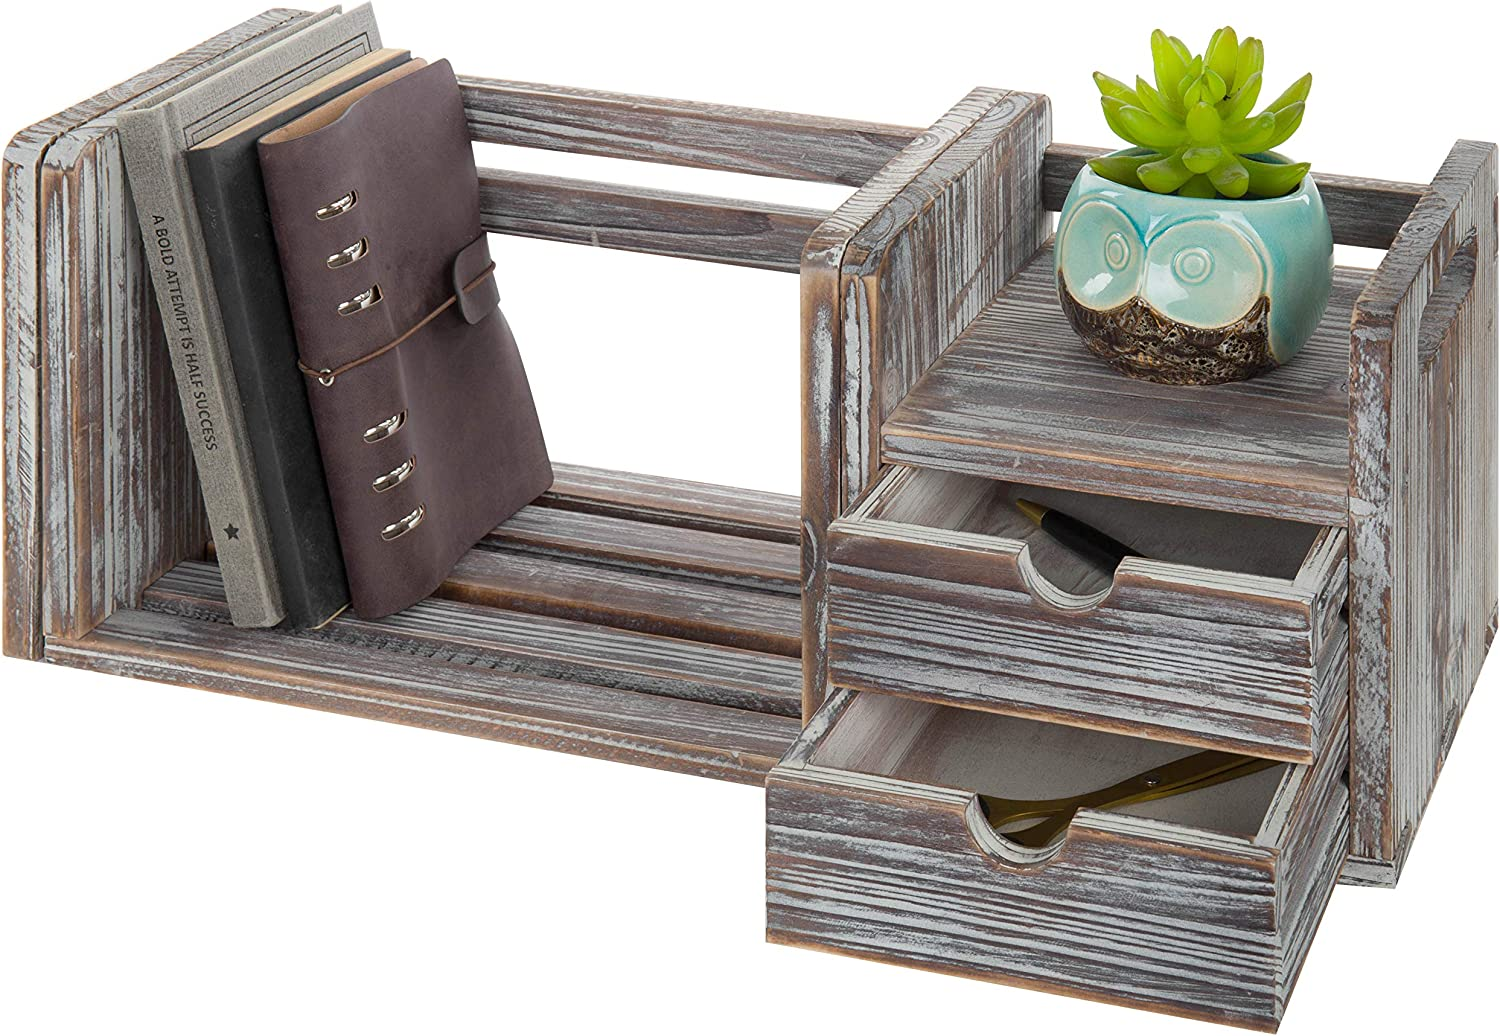 MyGift Gifts 2-Drawer Torched Wood Bookcase Mesa Mall Desktop Organiz Expandable